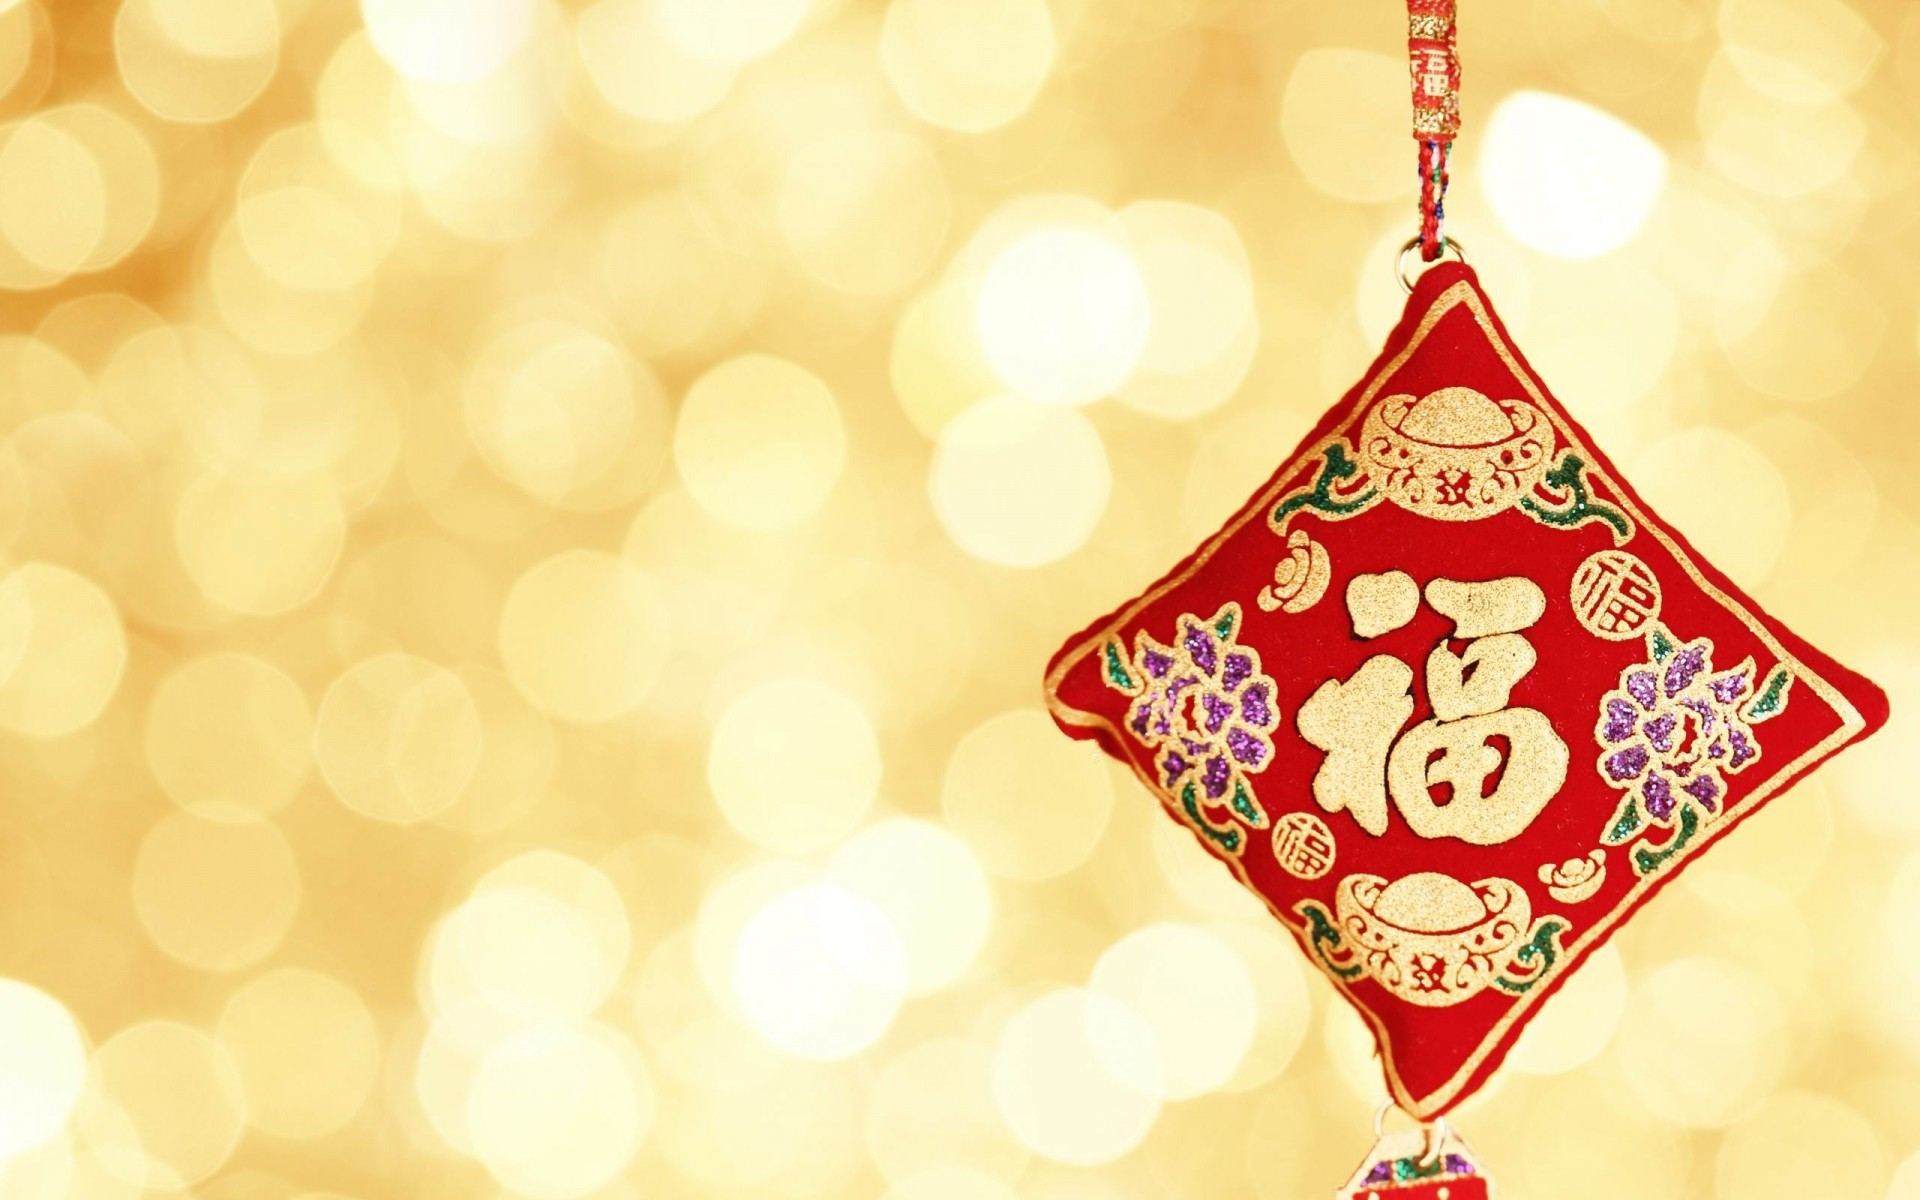 Happy Chinese New Year 2015 Wallpaper HD Wallpaper with 1920x1200 1920x1200